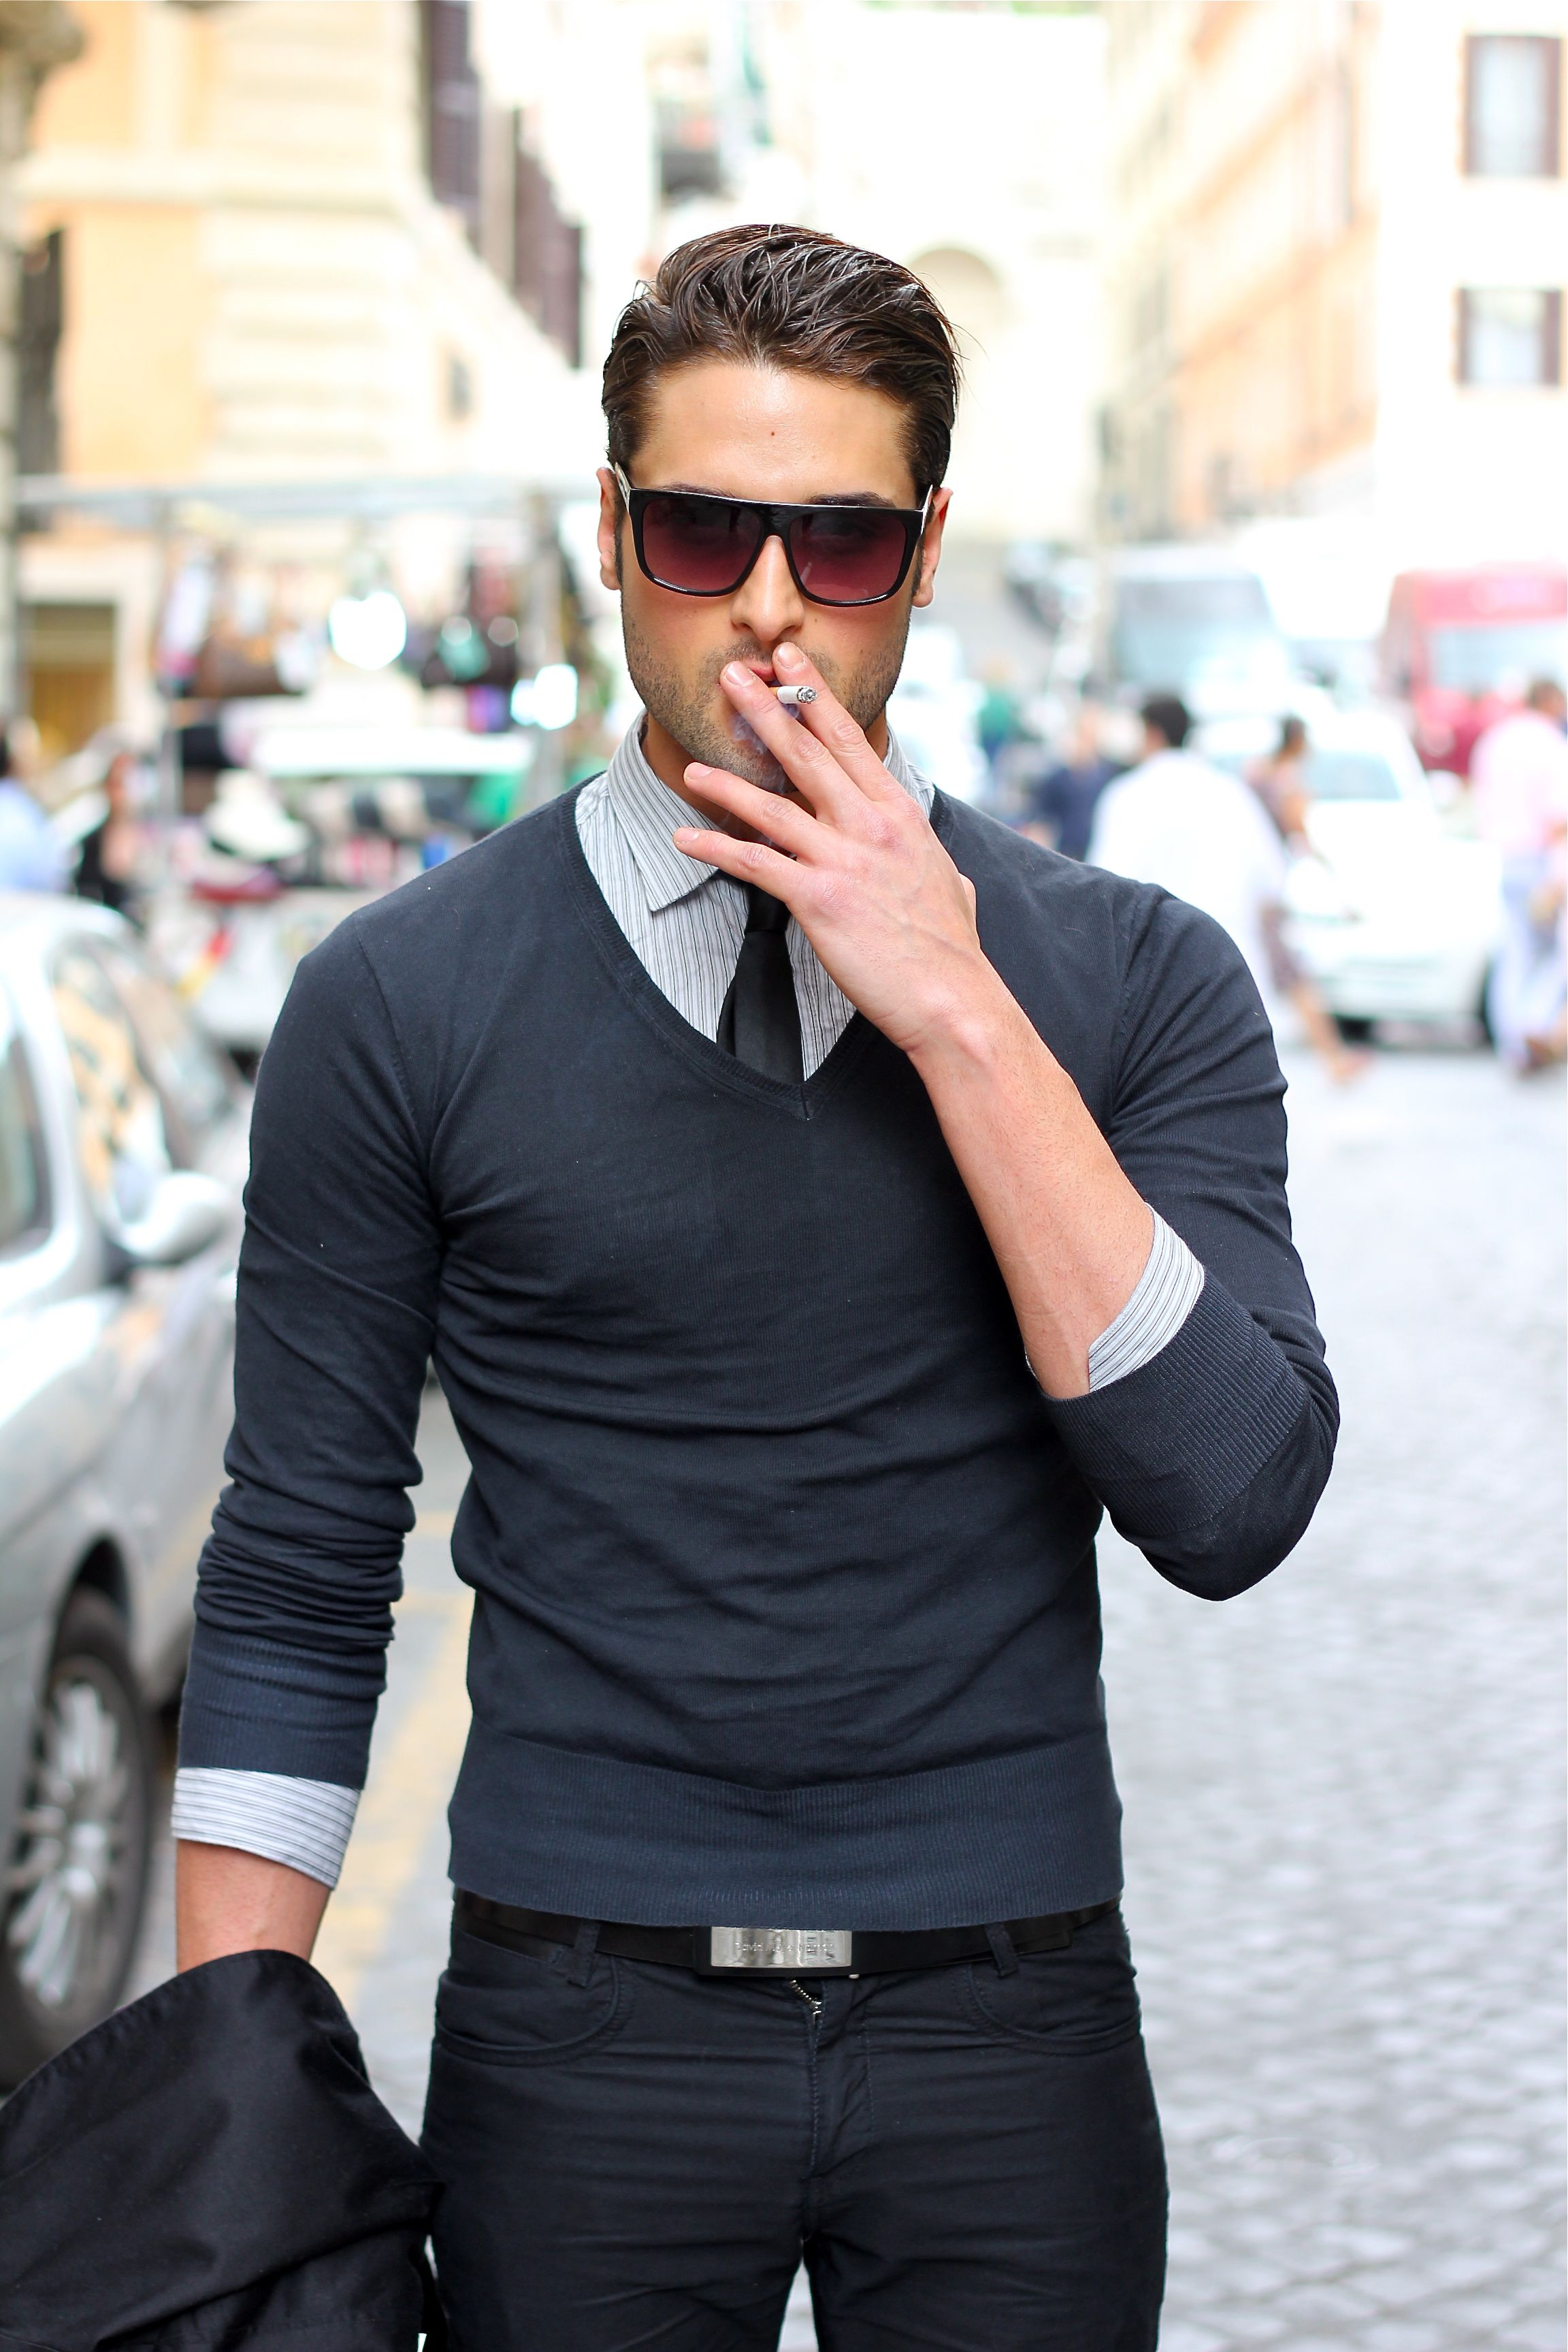 most popular street style fashion ideas for men man outfit